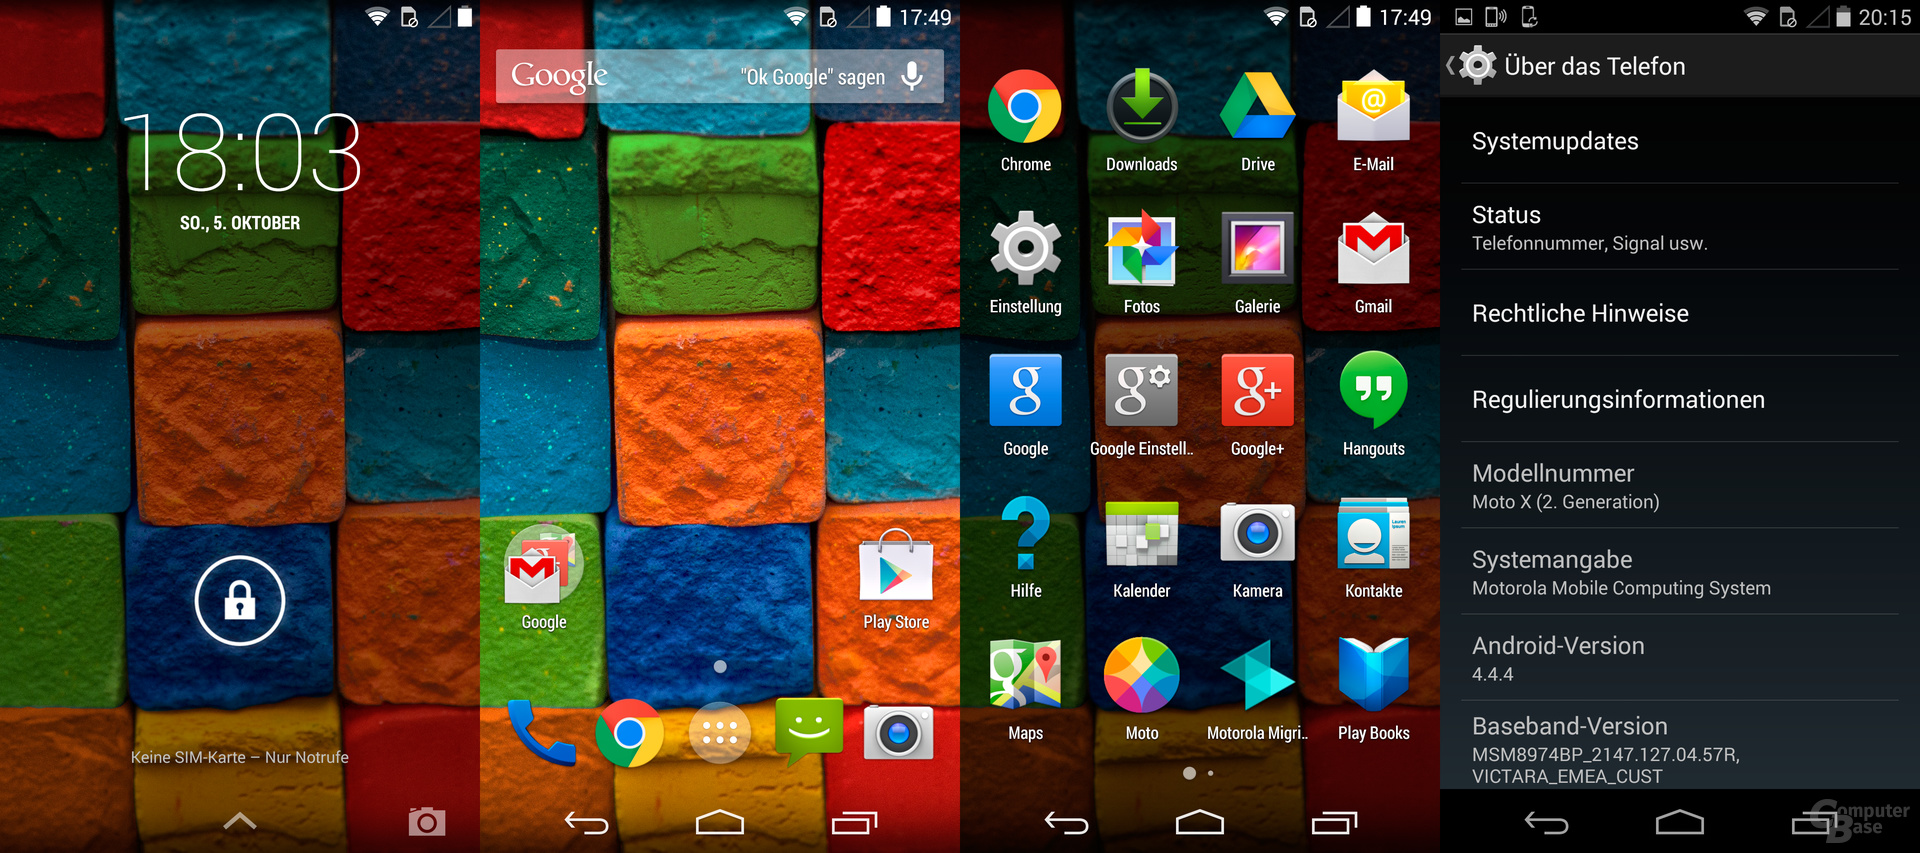 Lock- und Homescreen, App-Drawer und Systeminformationen